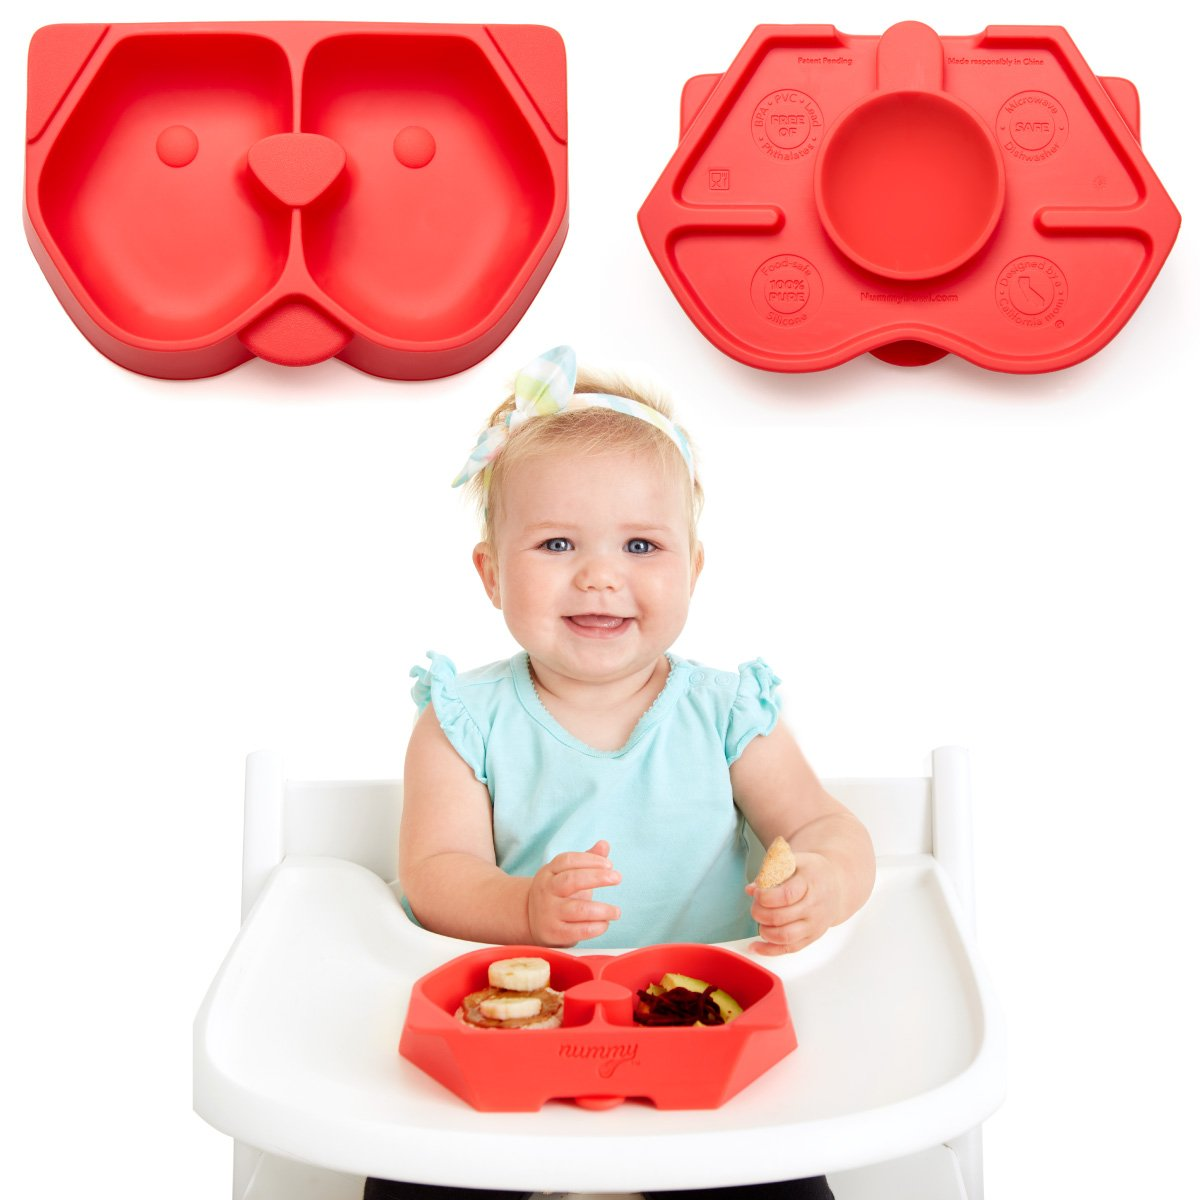 NUMMY Bowl - Pure Silicone Bowl with Hidden Suction Cup for Babies and Toddlers | Great Baby Gift | BPA and Phthalate Free | Microwave and Dishwasher Safe | Puppy Design Drink Tank Ltd.